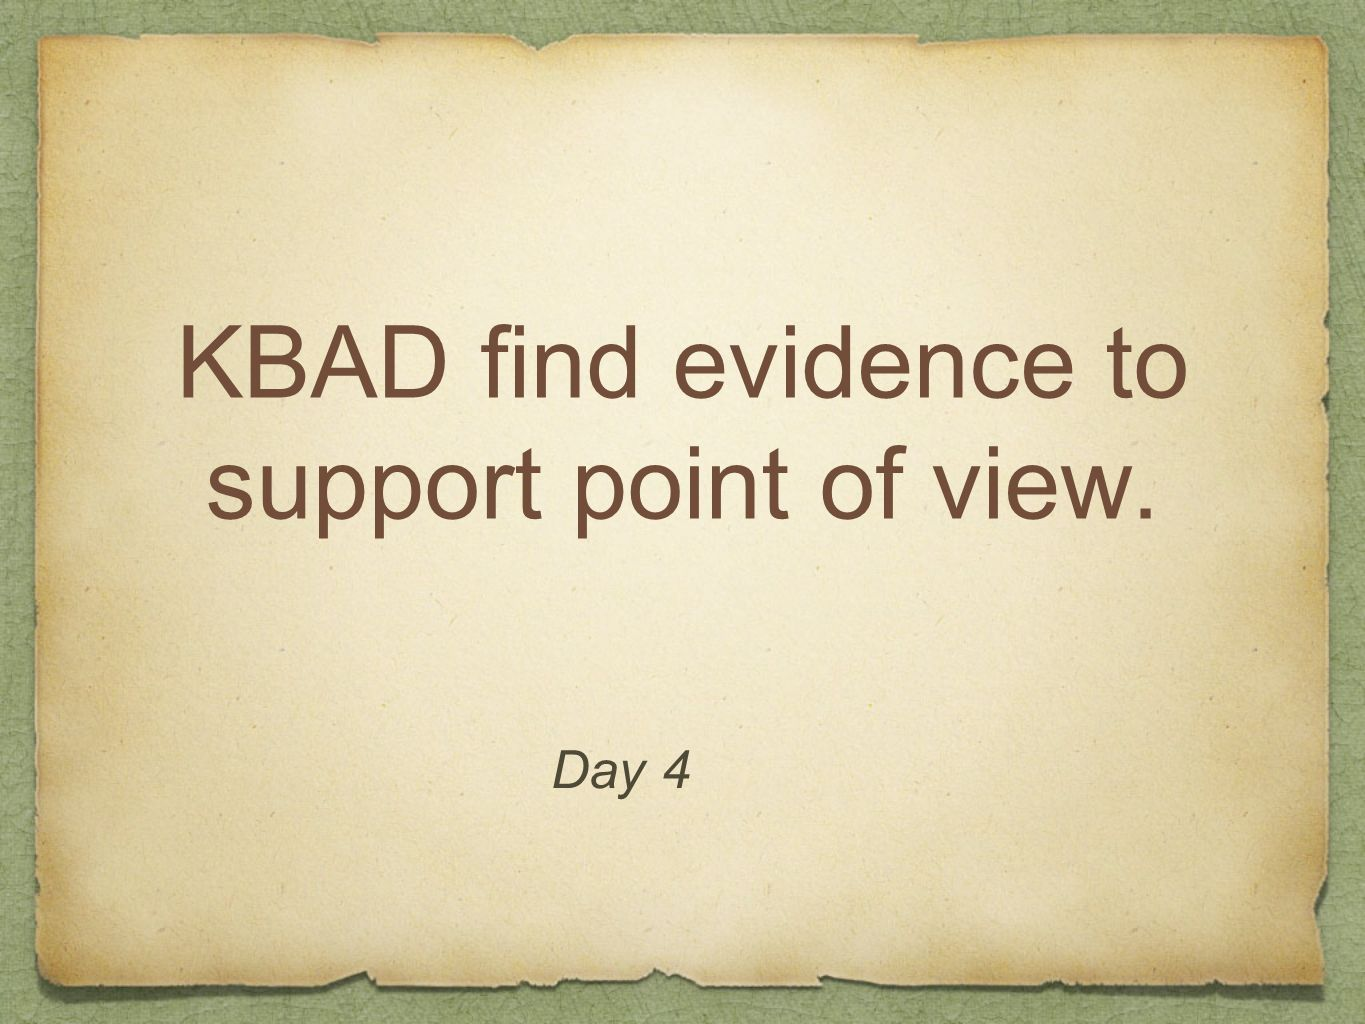 KBAD find evidence to support point of view. Day 4